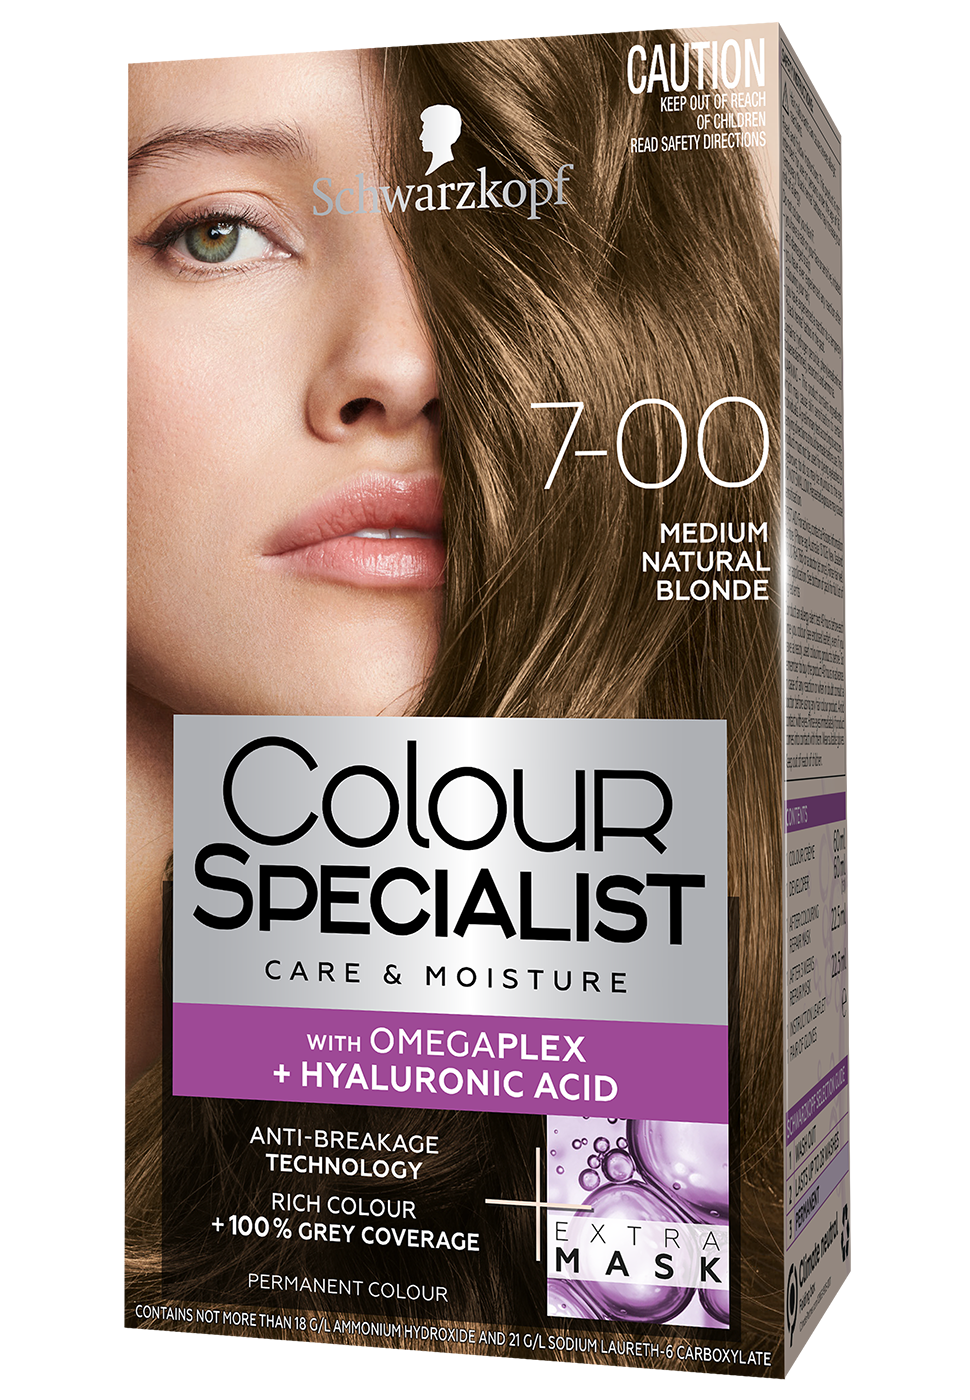 Colour Specialist 7-00 Medium Natural Blonde 3D LF_970x1400